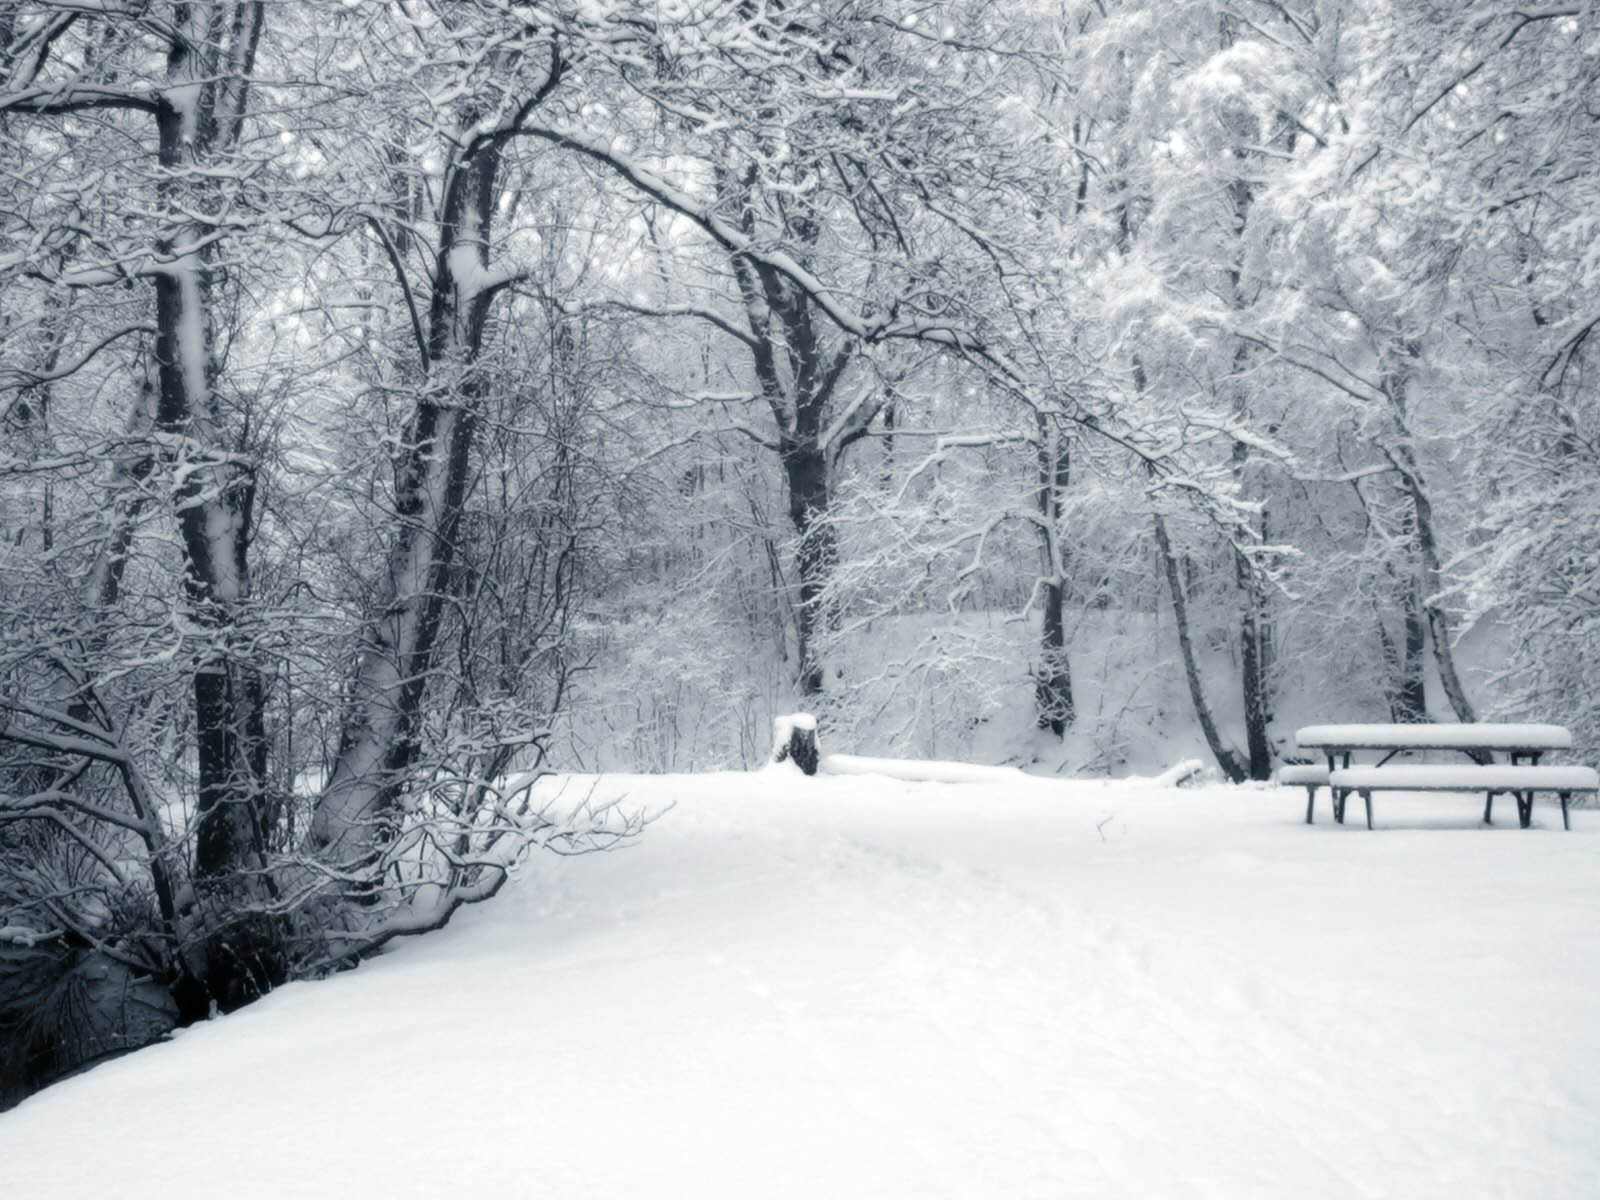 Winter Backgrounds Wallpapers Photos Picturesand Images for 1600x1200